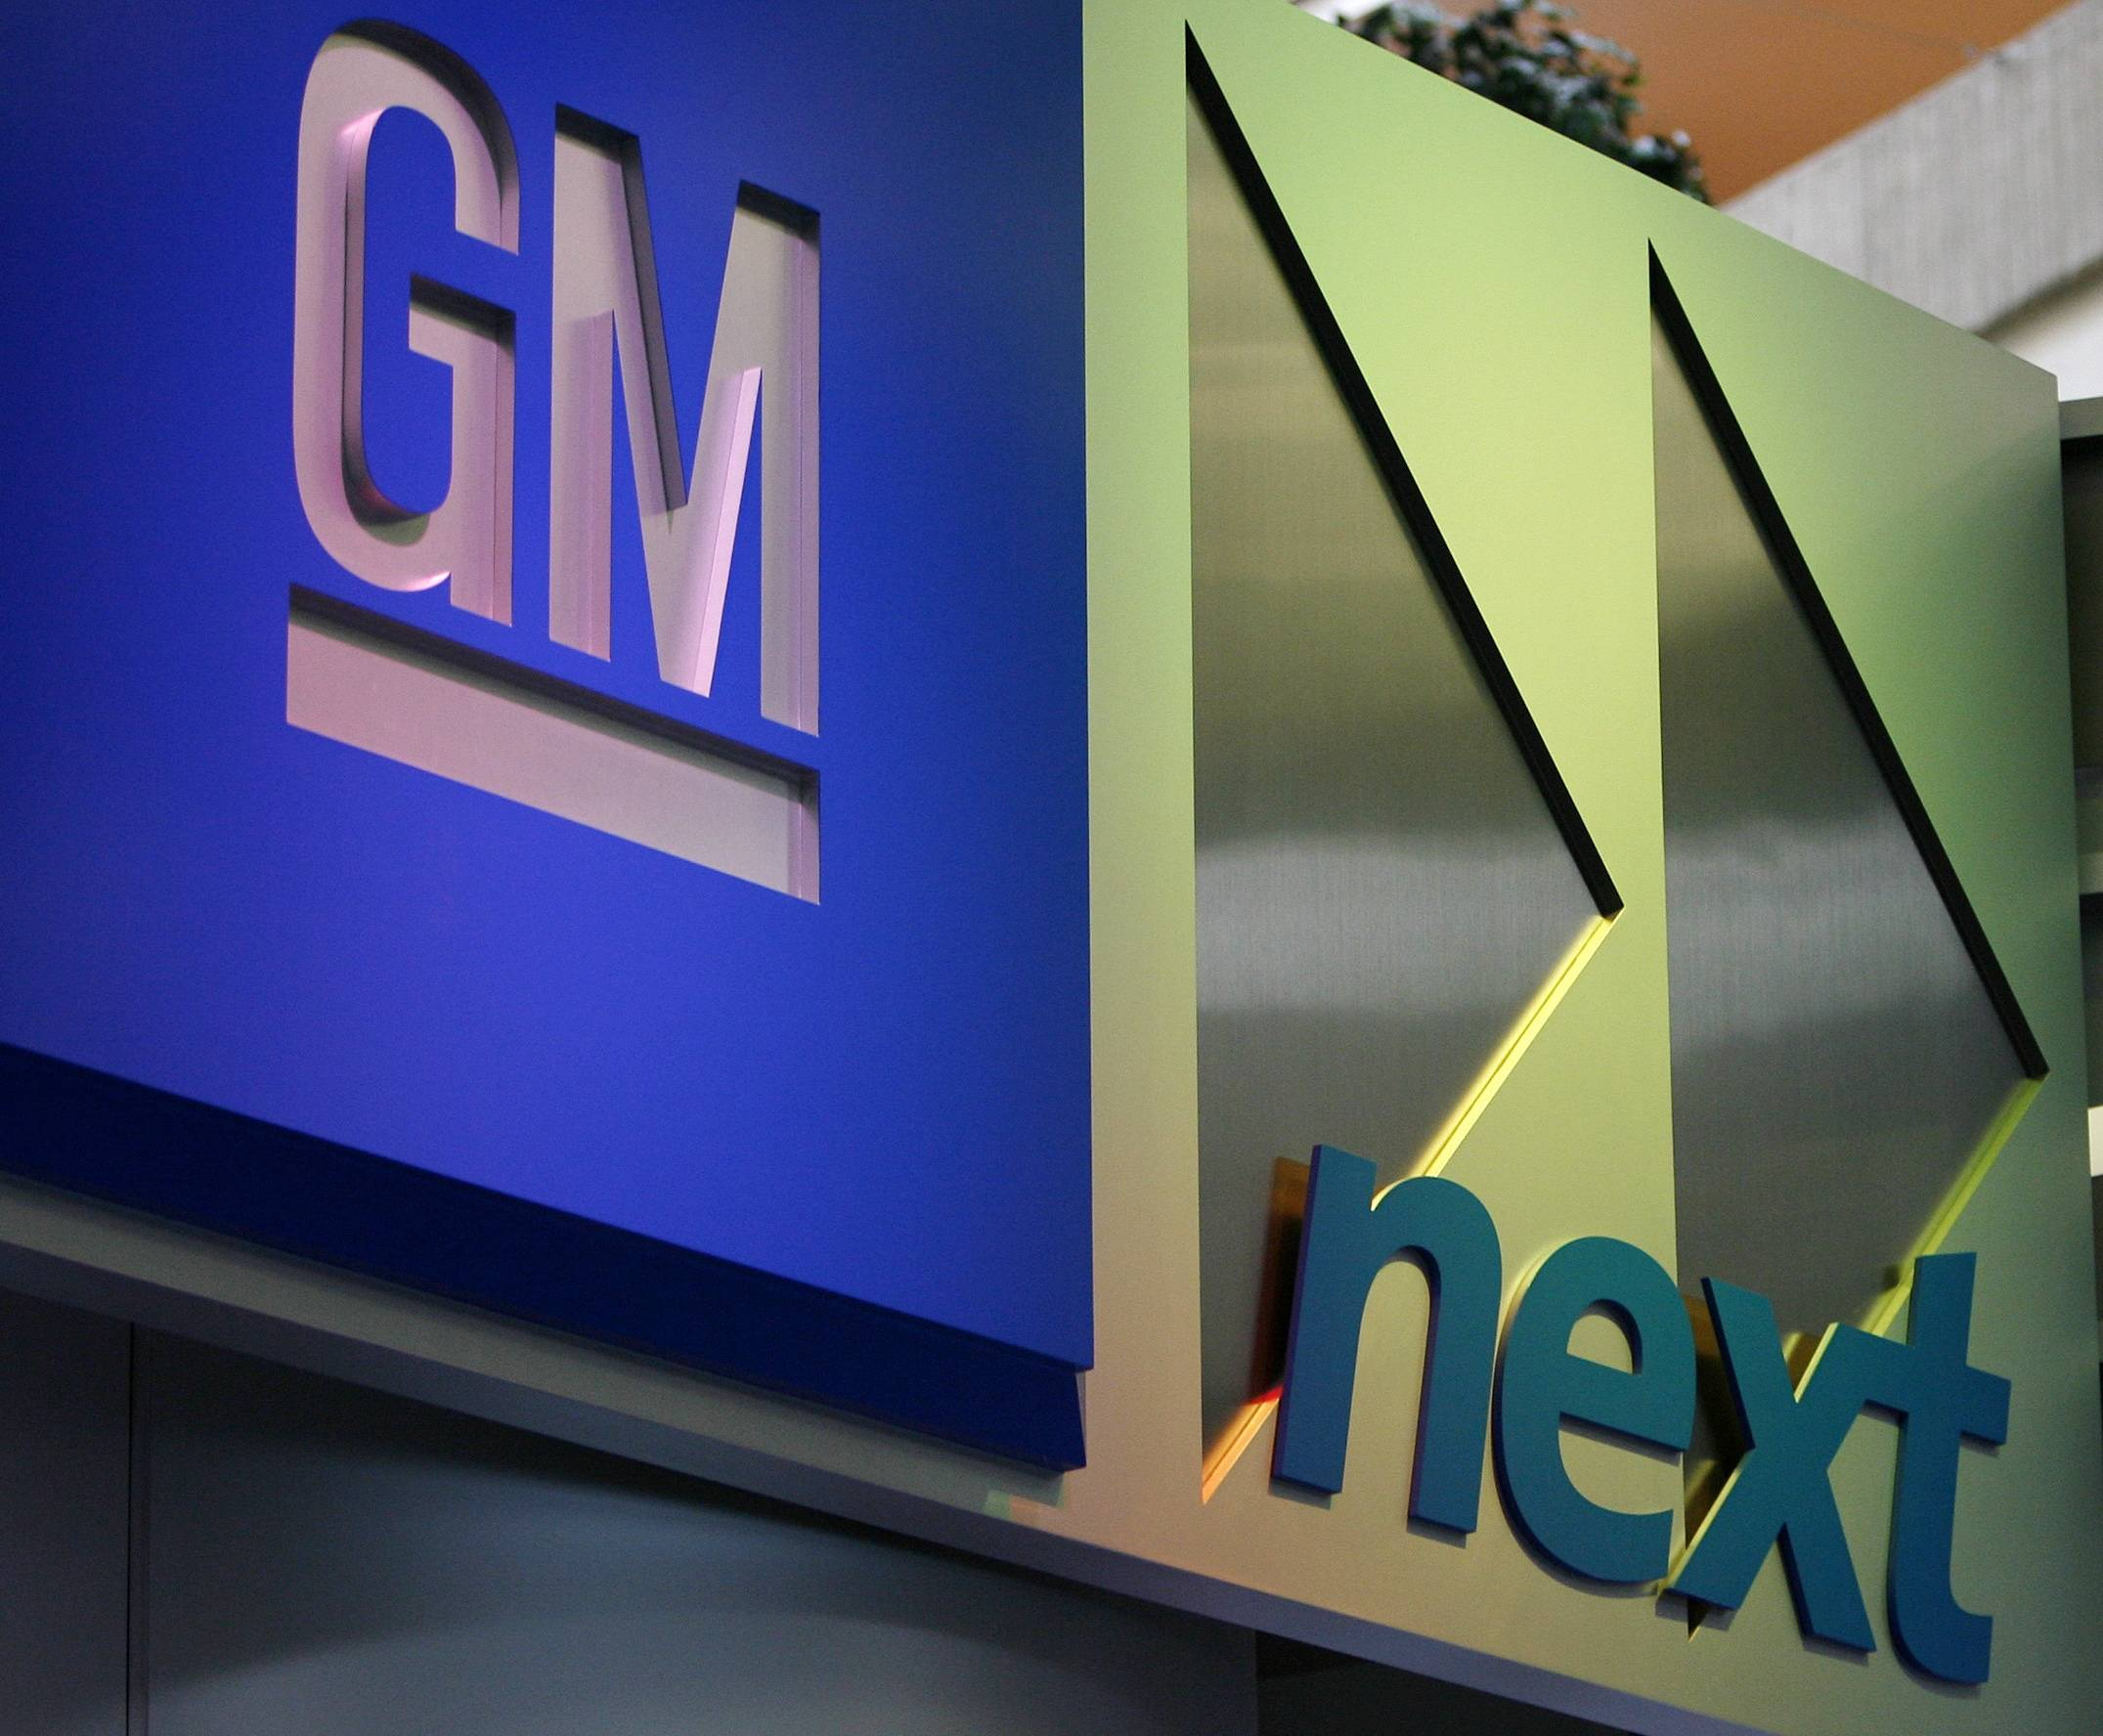 General Motors' safety crisis worsened on Monday when the automaker added 8.2 million vehicles to its huge list of cars recalled over faulty ignition switches.